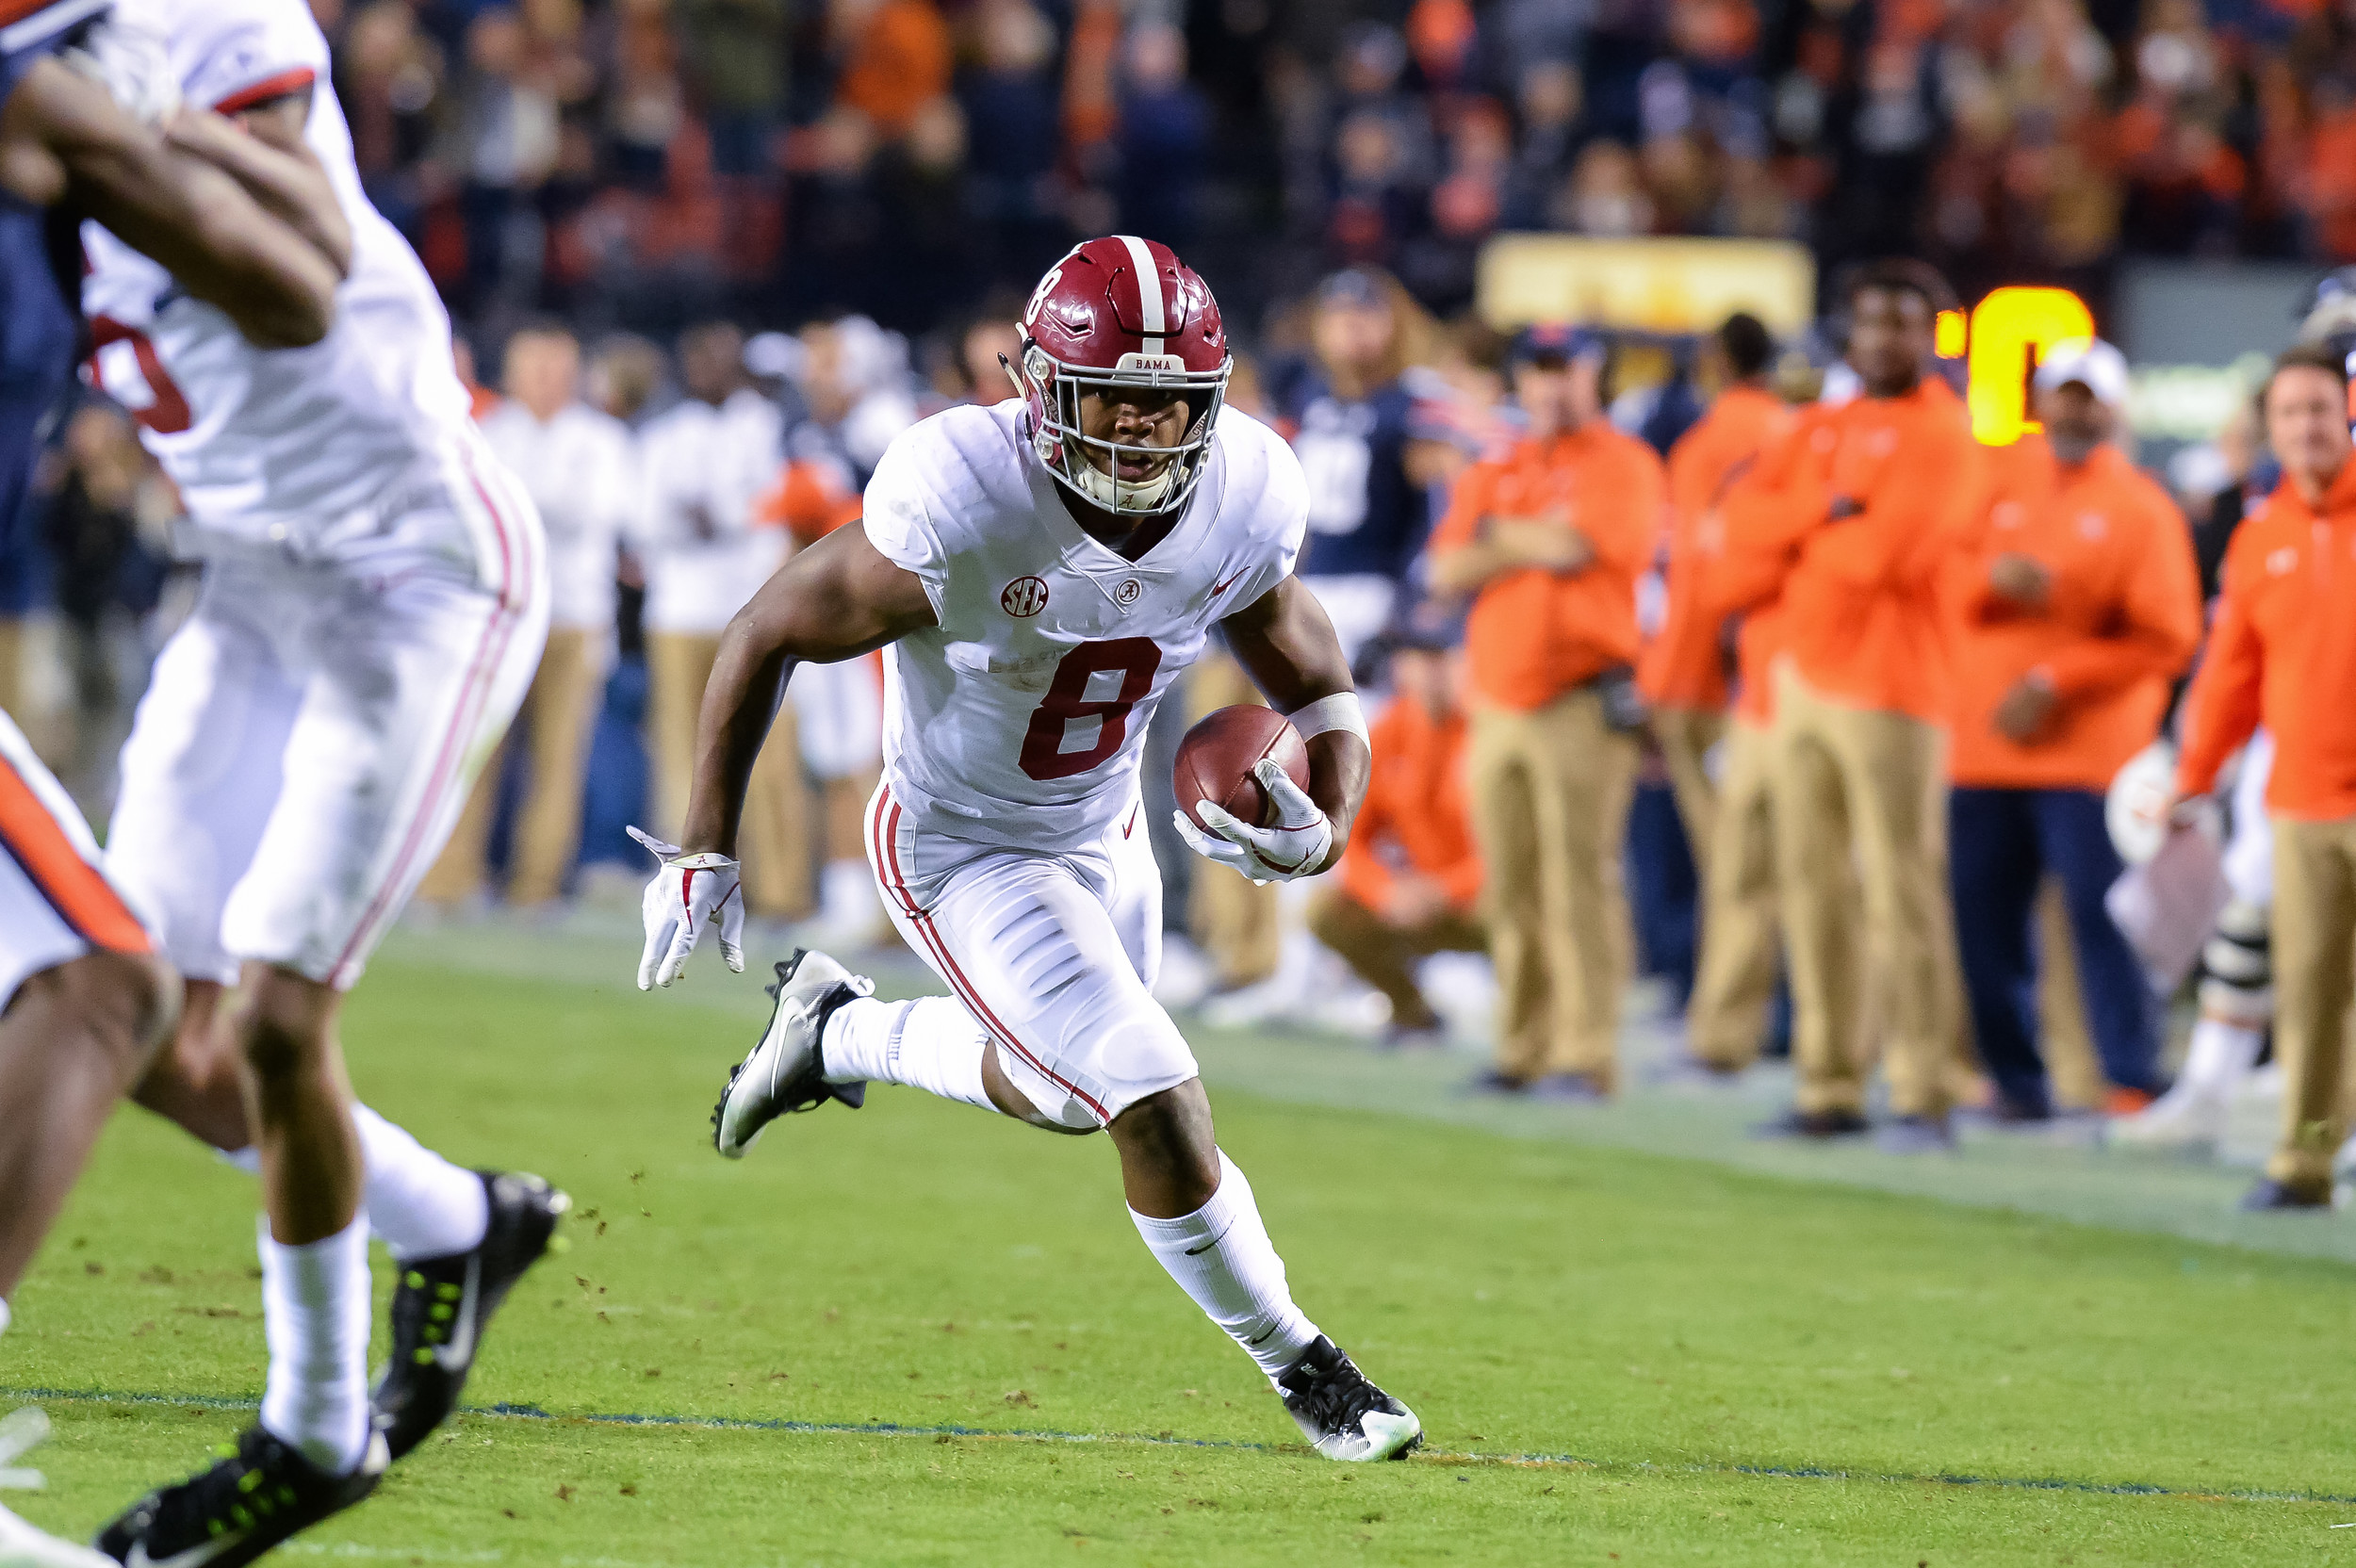 Alabama Crimson Tide running back Josh Jacobs (8) heads upfield during the second half of Saturday's game, at Jordan-Hare Stadium.